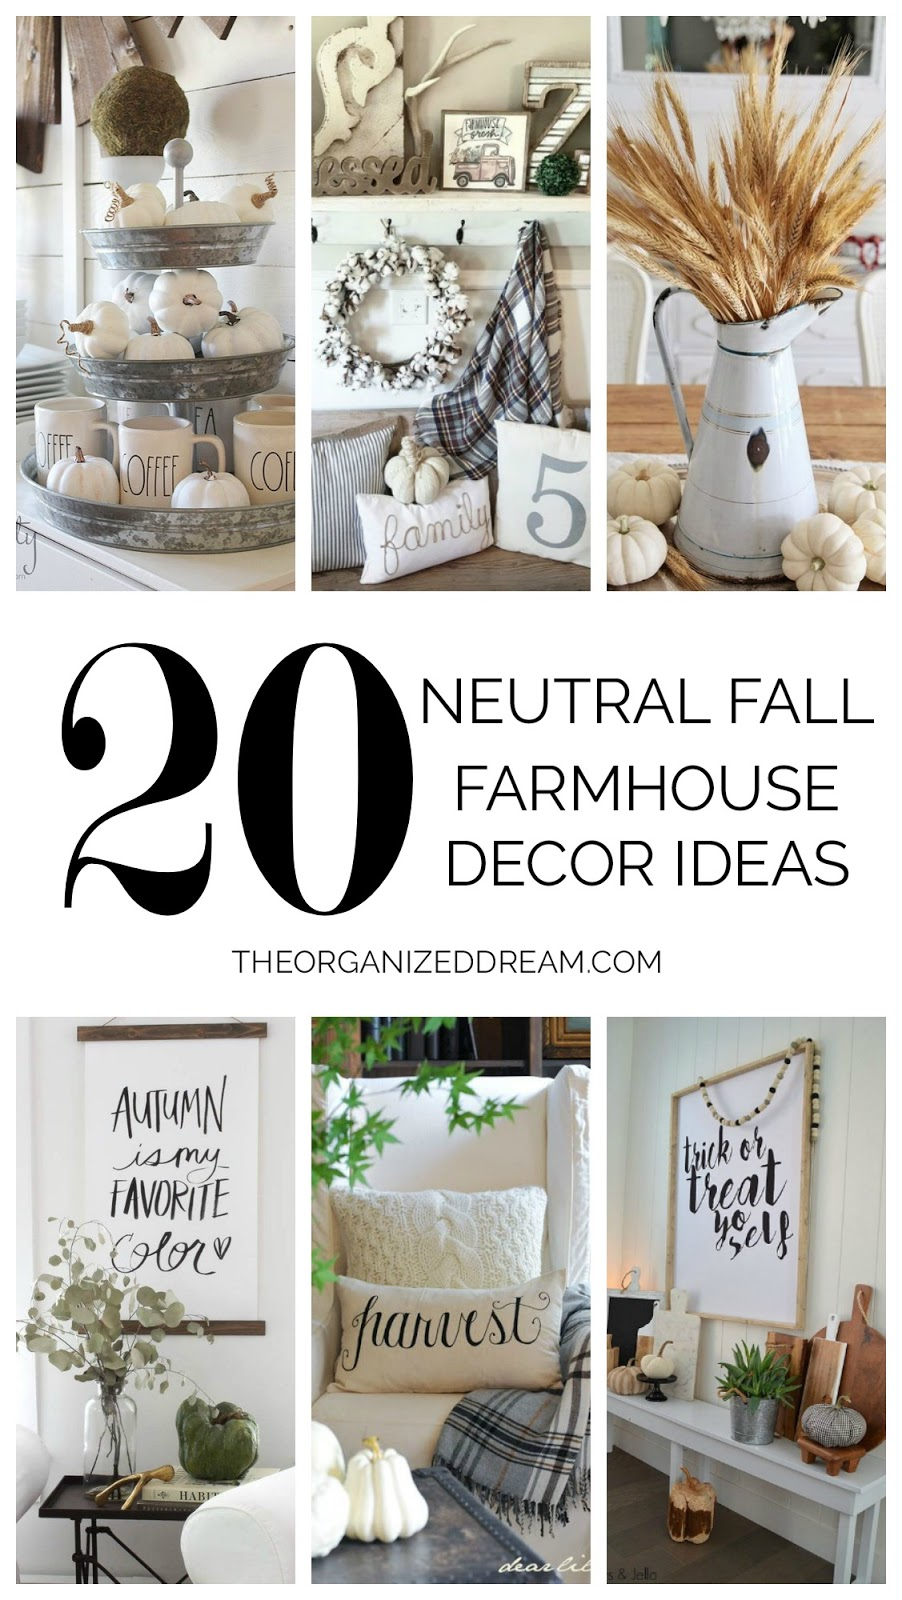 20 Neutral Farmhouse Decor Ideas for Fall.